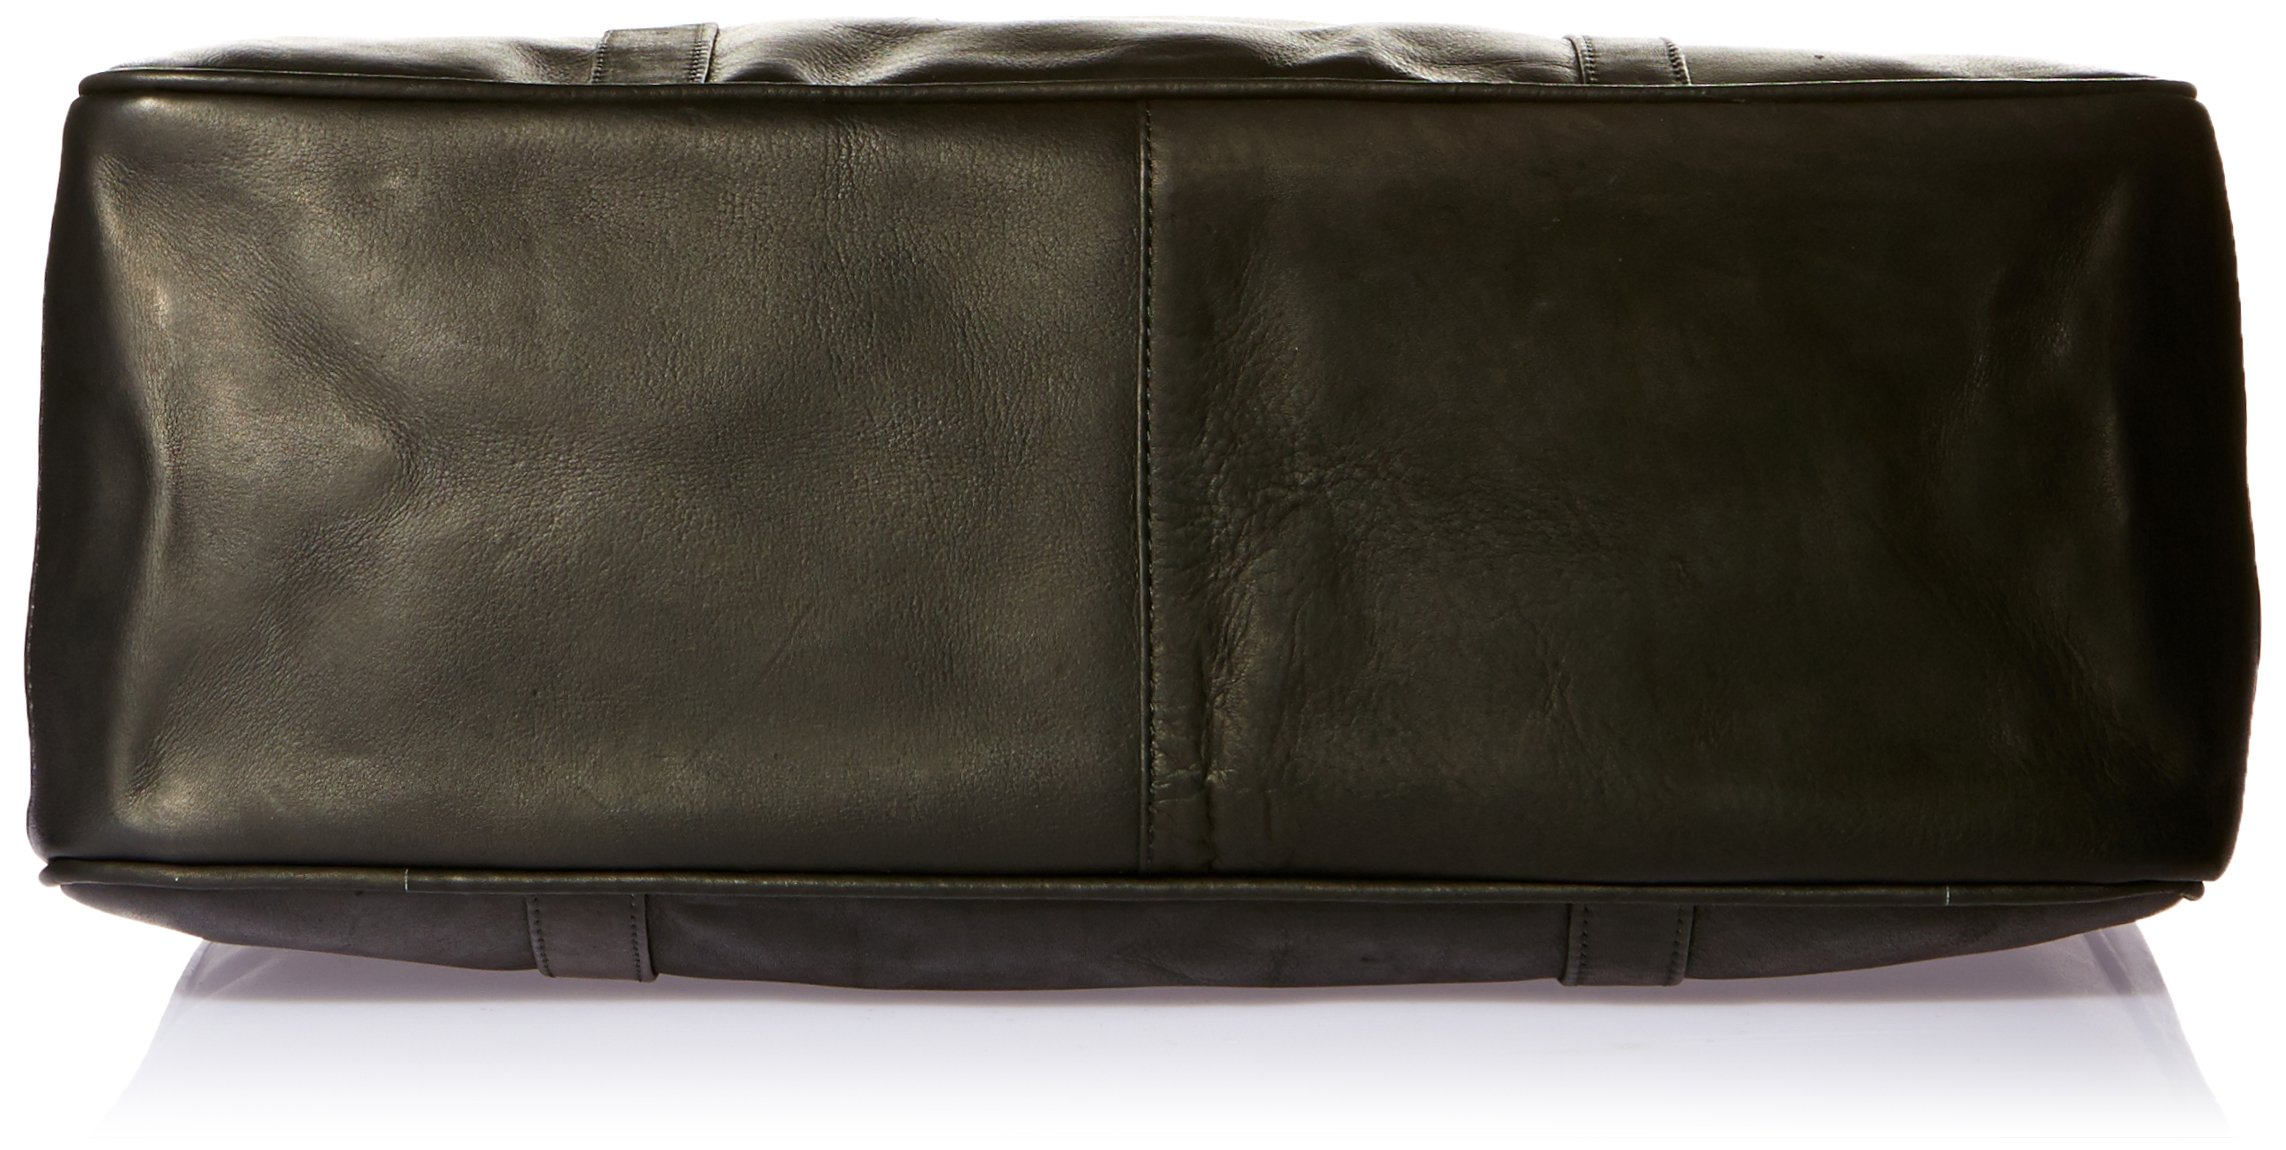 Piel Leather Large Shopping Bag, Black, One Size by Piel Leather (Image #4)